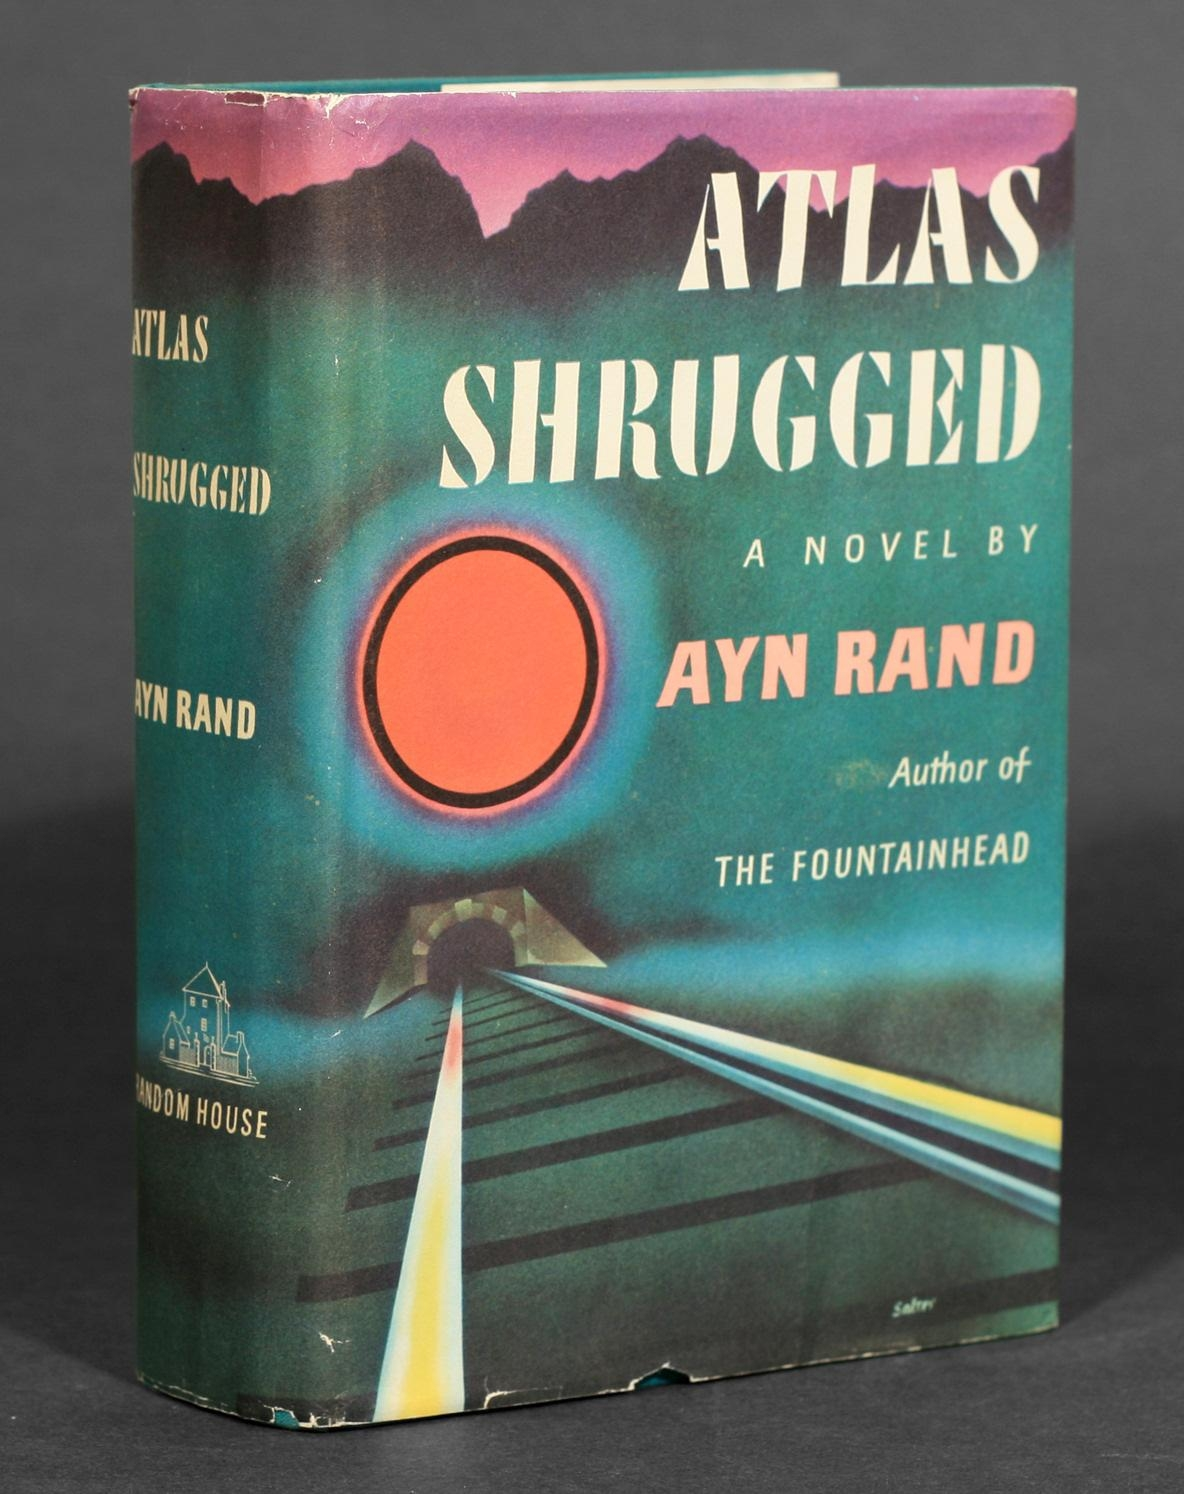 University For Strategic Optimism | A University Based On The regarding Atlas Shrugged Cover Art